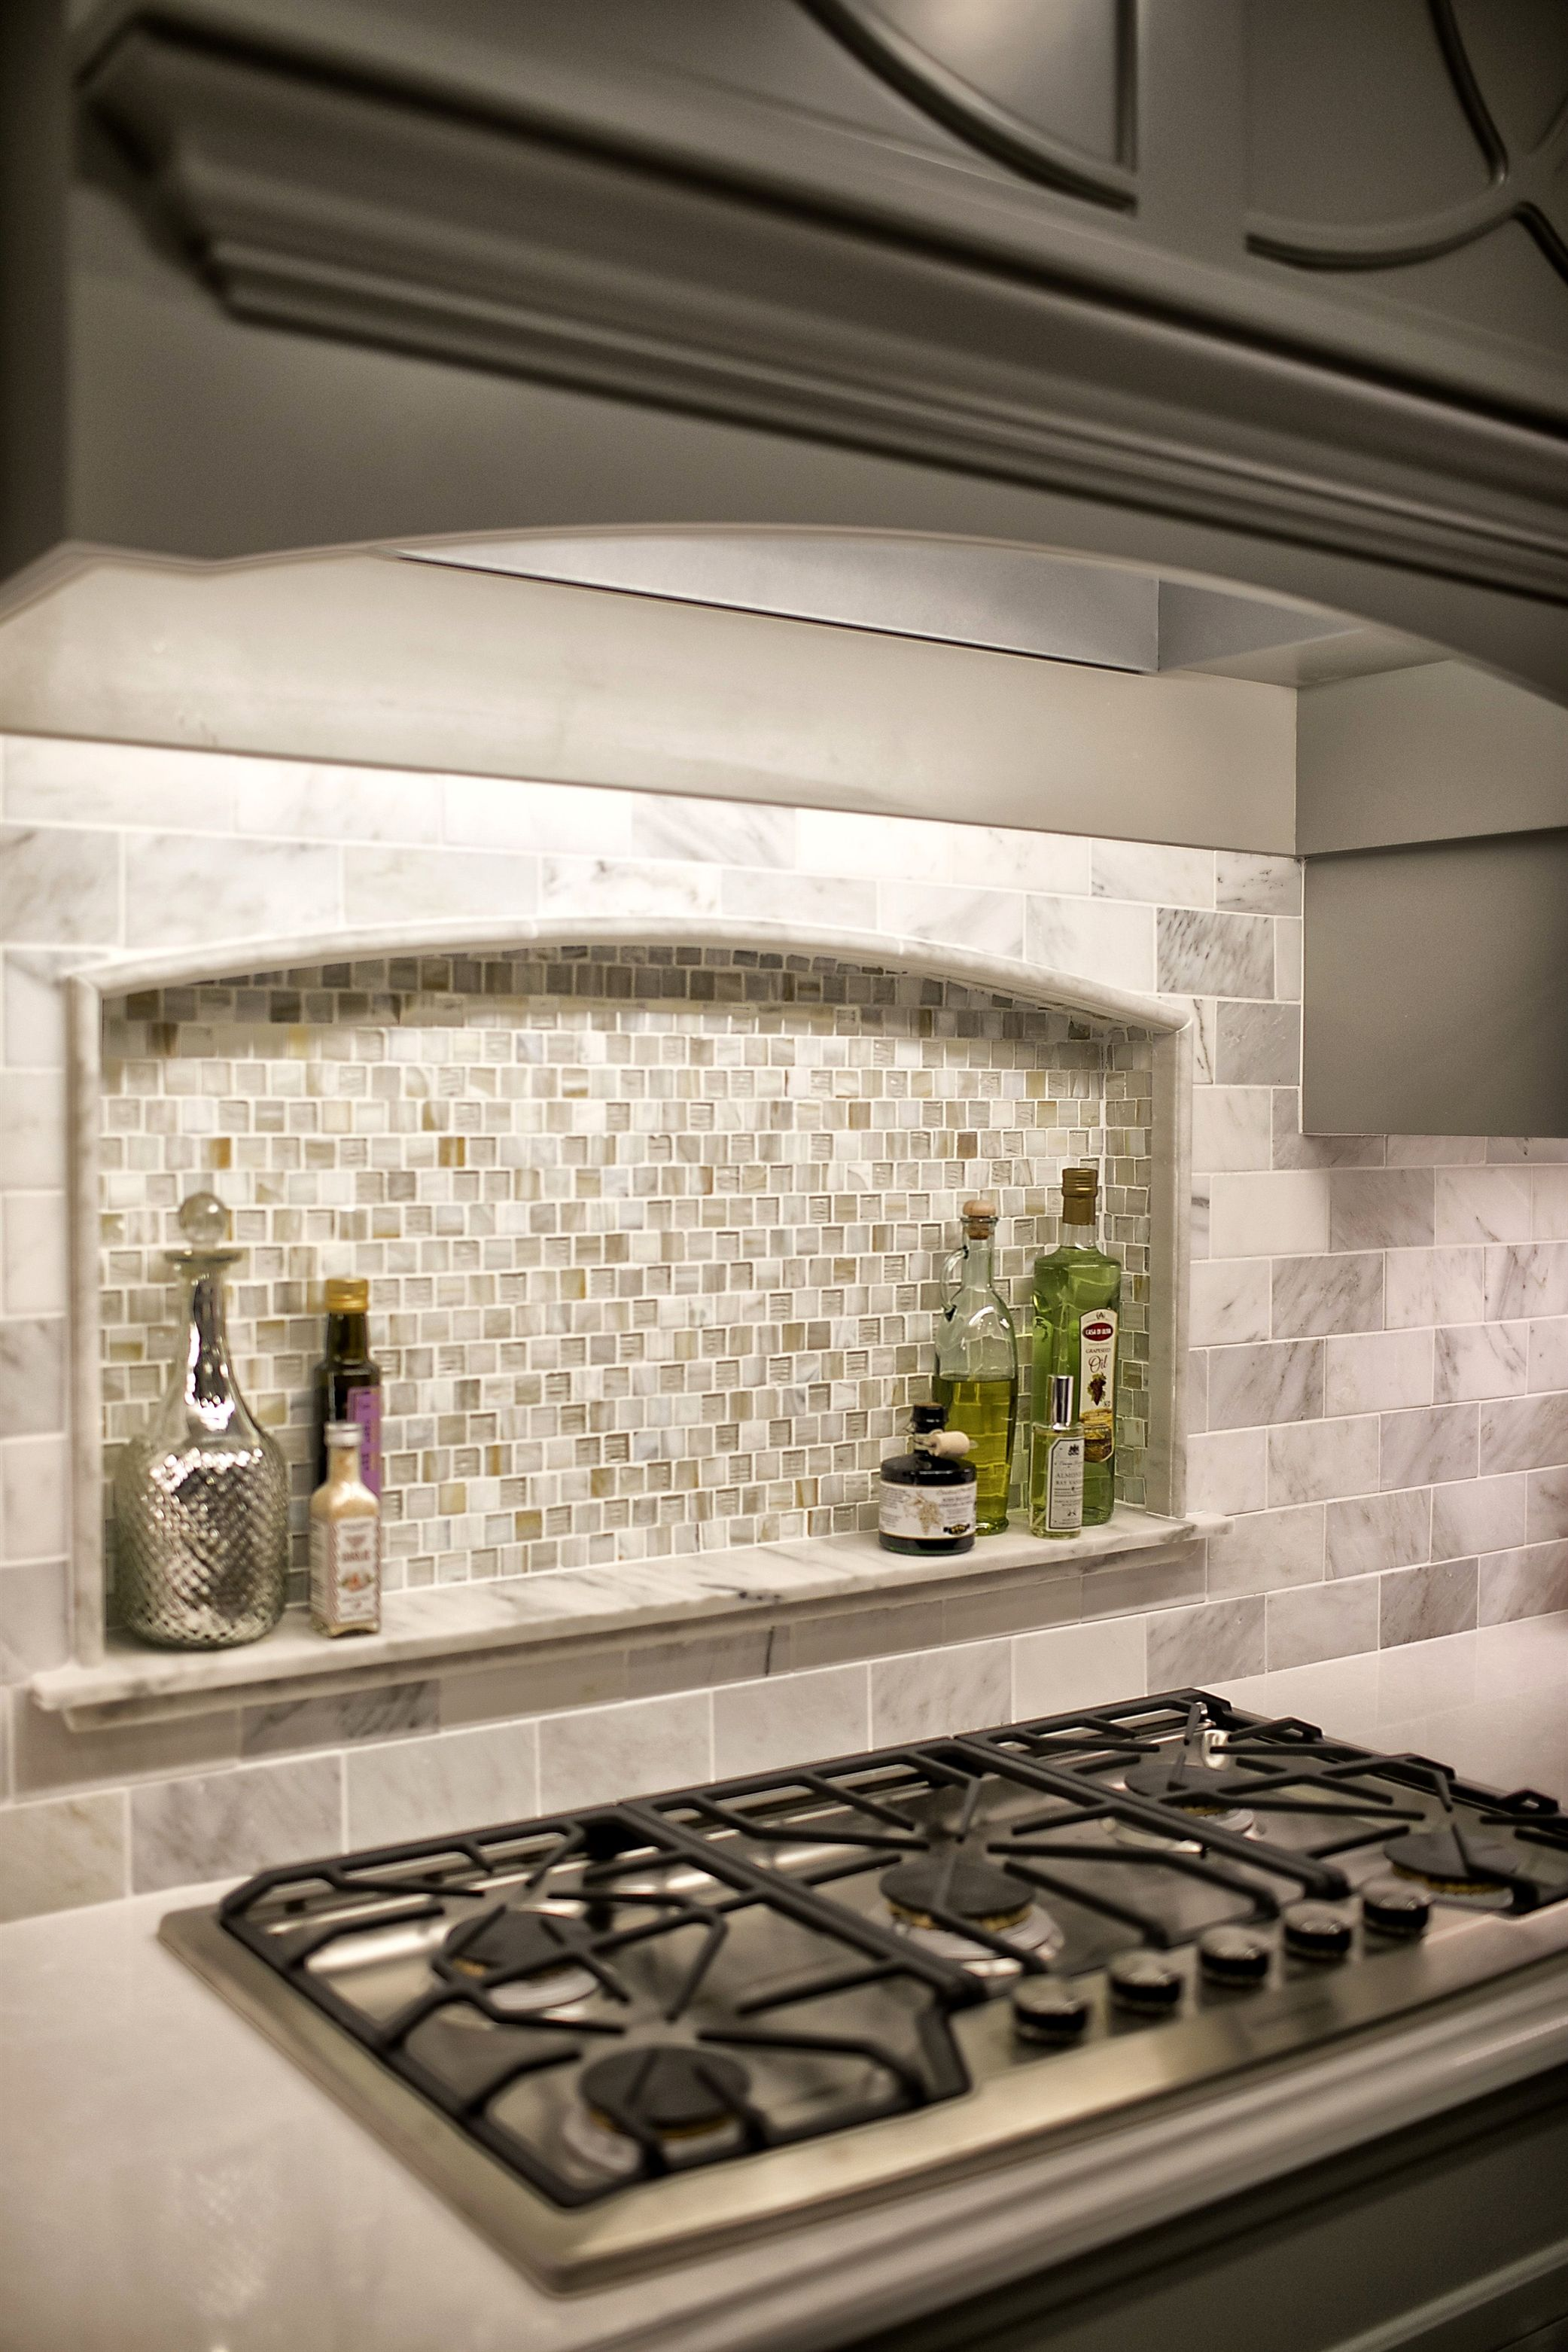 - Custom Niche In Kitchen Backsplash With Marble Ledge. Marble And